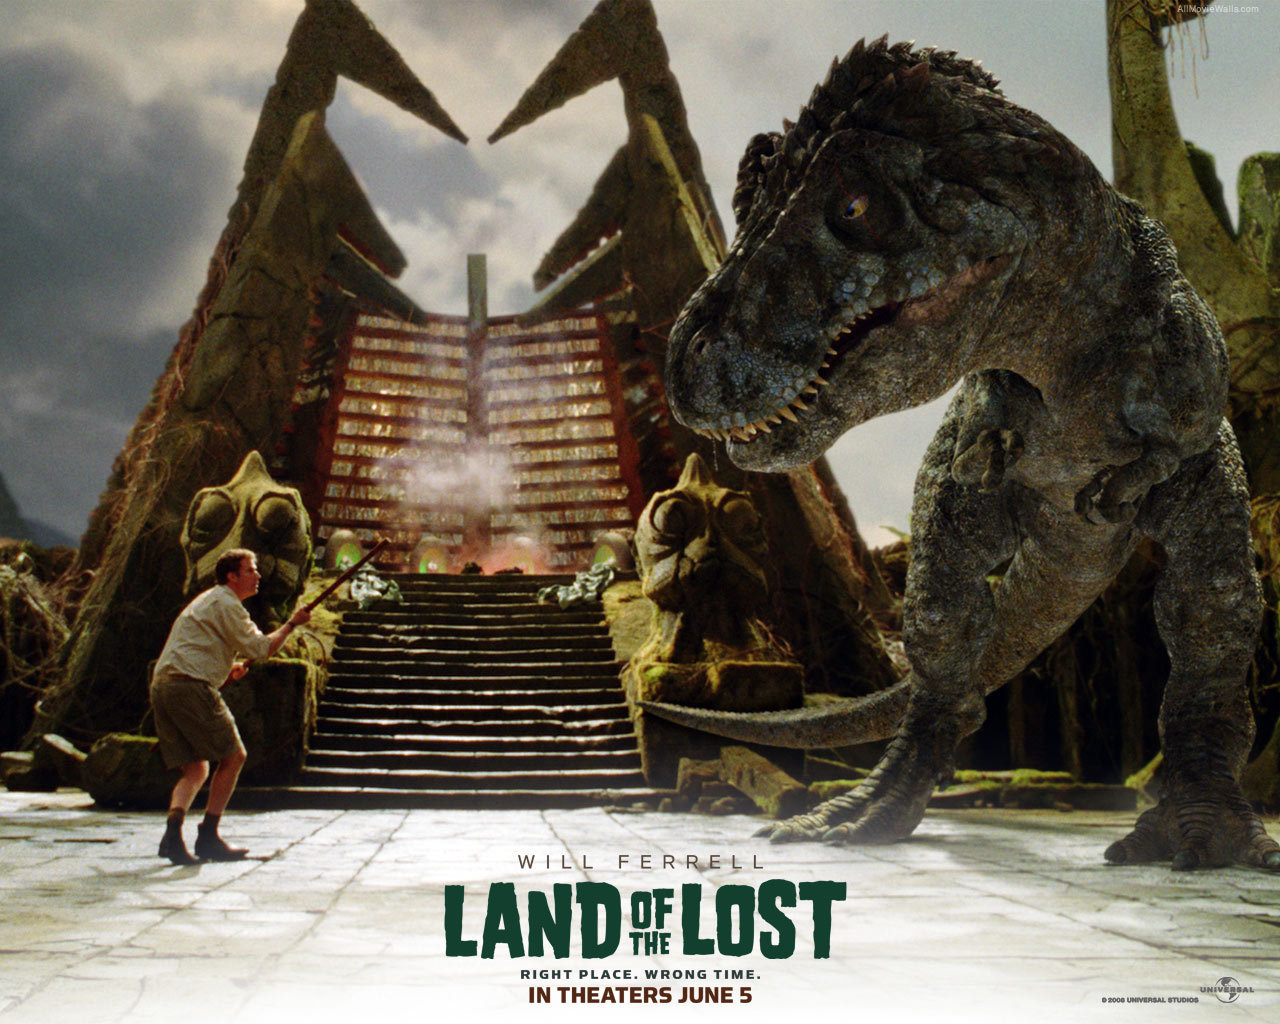 http://images2.fanpop.com/images/photos/6600000/Land-of-the-Lost-wallpapers-upcoming-movies-6609922-1280-1024.jpg